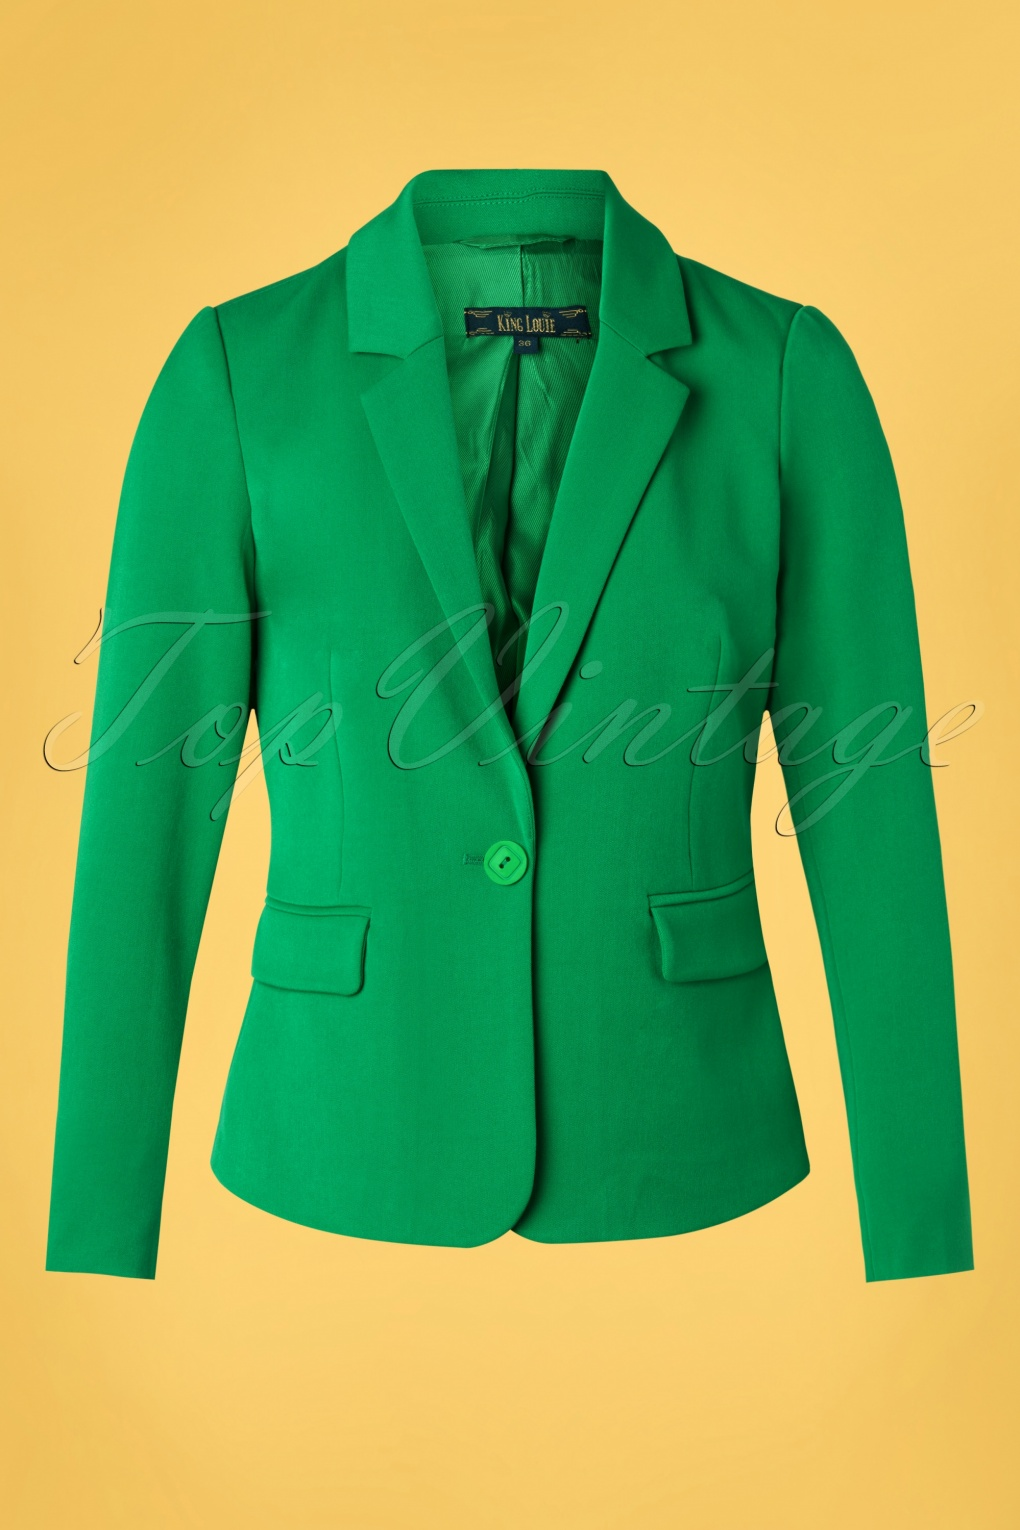 1960s Style Dresses, Clothing, Shoes UK 60s Daisy Broadway Blazer in Very Green £101.62 AT vintagedancer.com